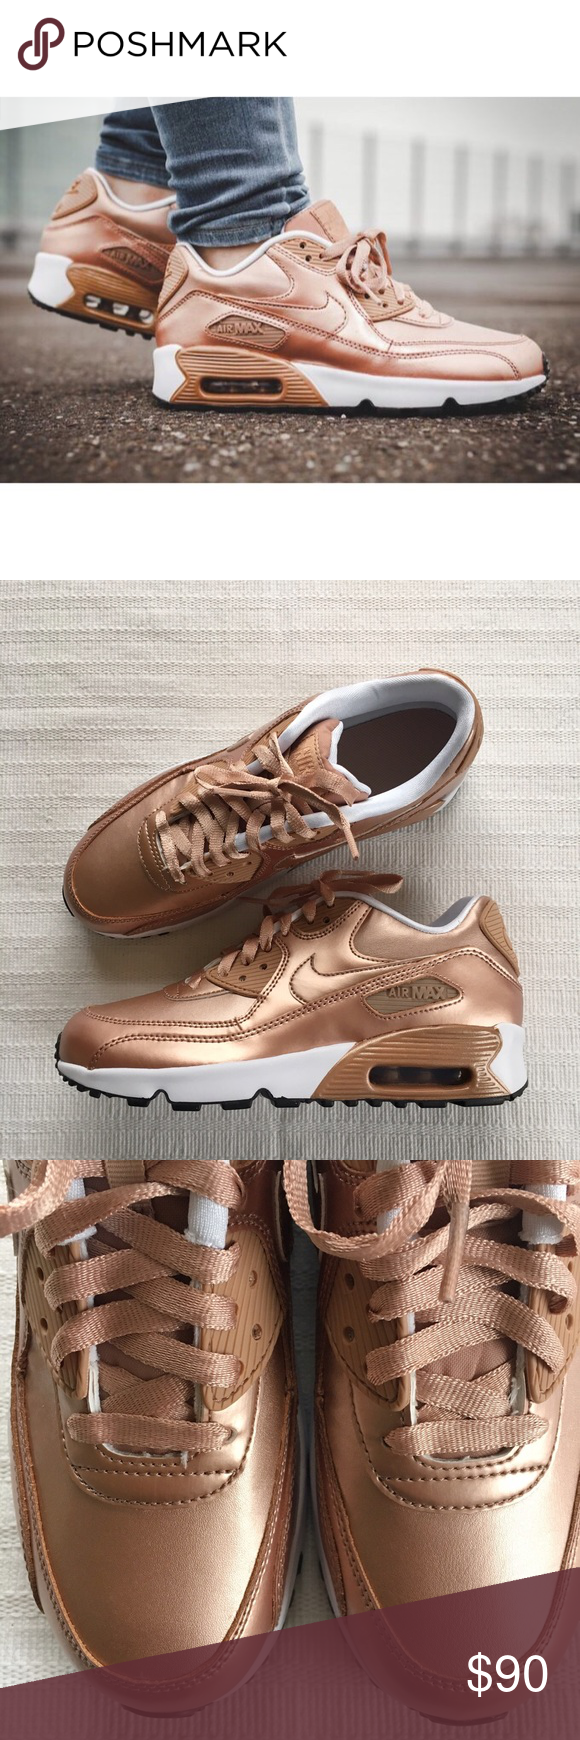 timeless design bedb8 66433 Girl s Nike Air Max 90 GS Metallic Bronze Sneakers Girl s Nike Air Max 90  GS Metallic Bronze Sneakers Style Color  859633-900   Girl s size 6.5Y    NEW in ...